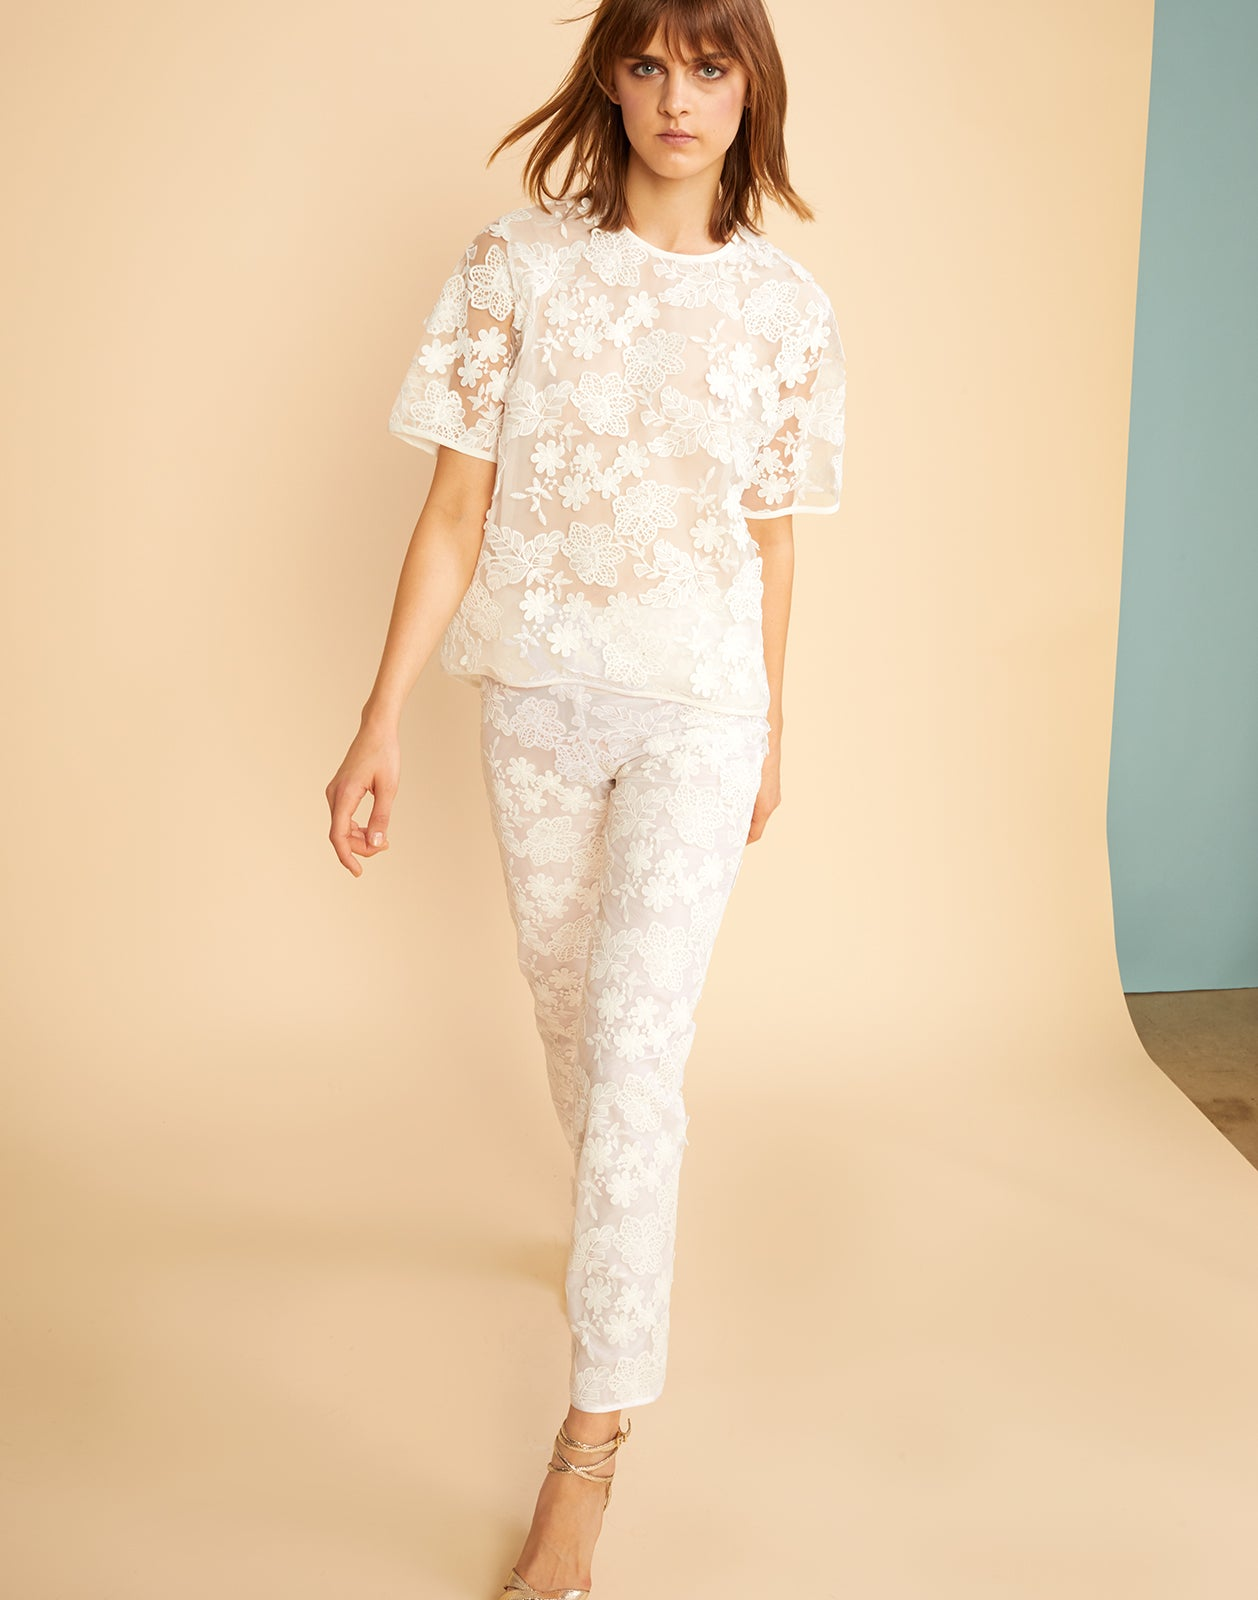 Front view of the floral lace pants with underlining.